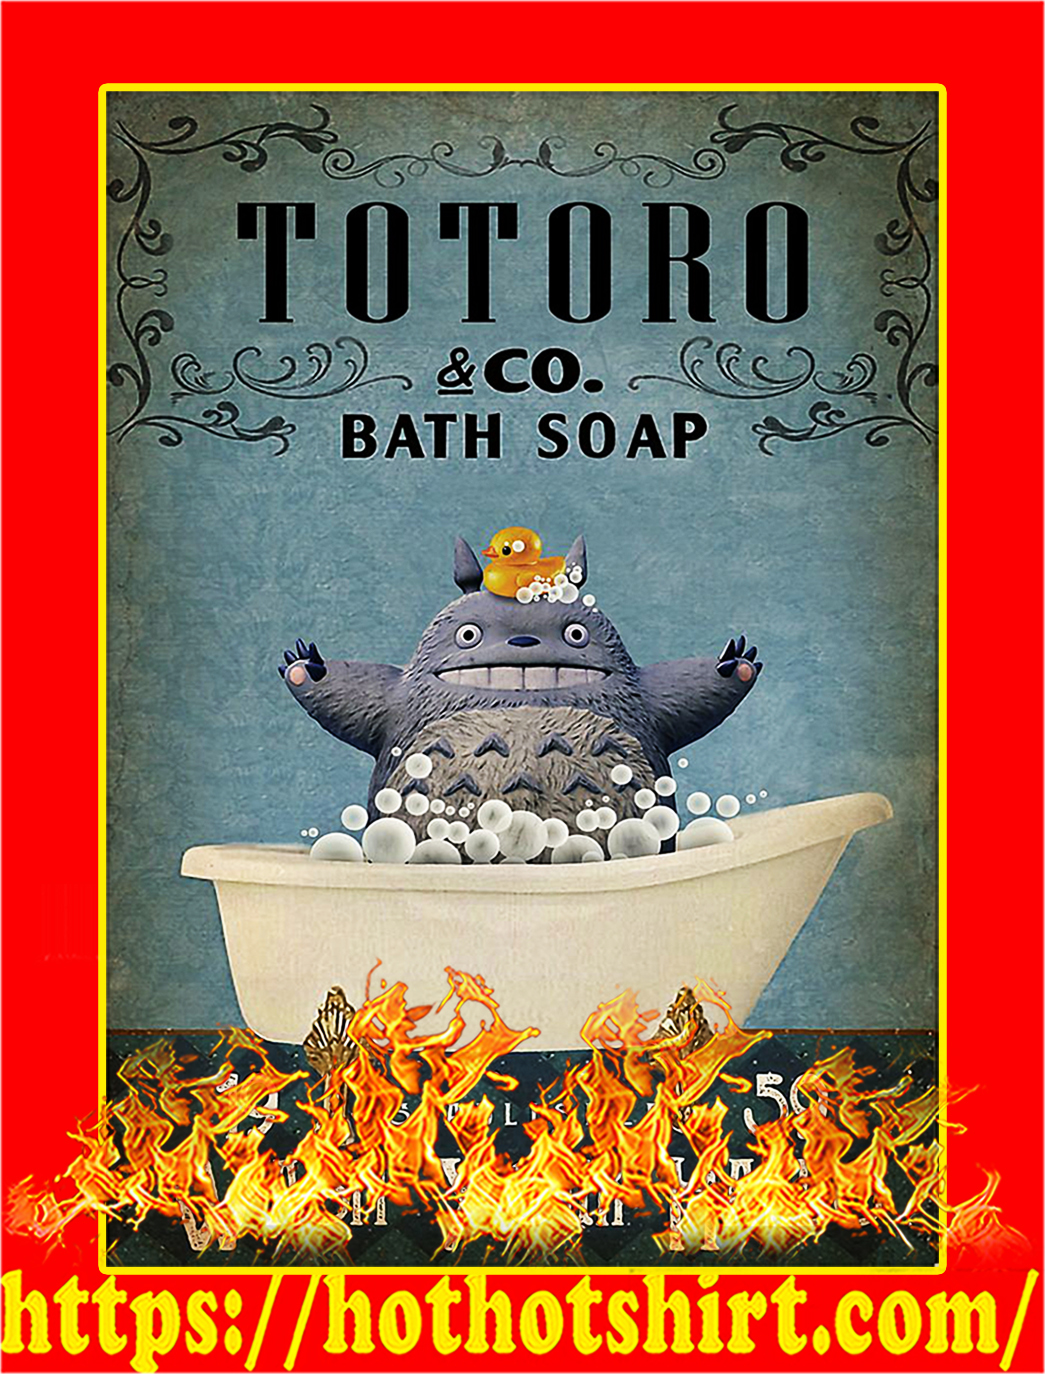 Totoro co bath soap wash your hands poster - A2